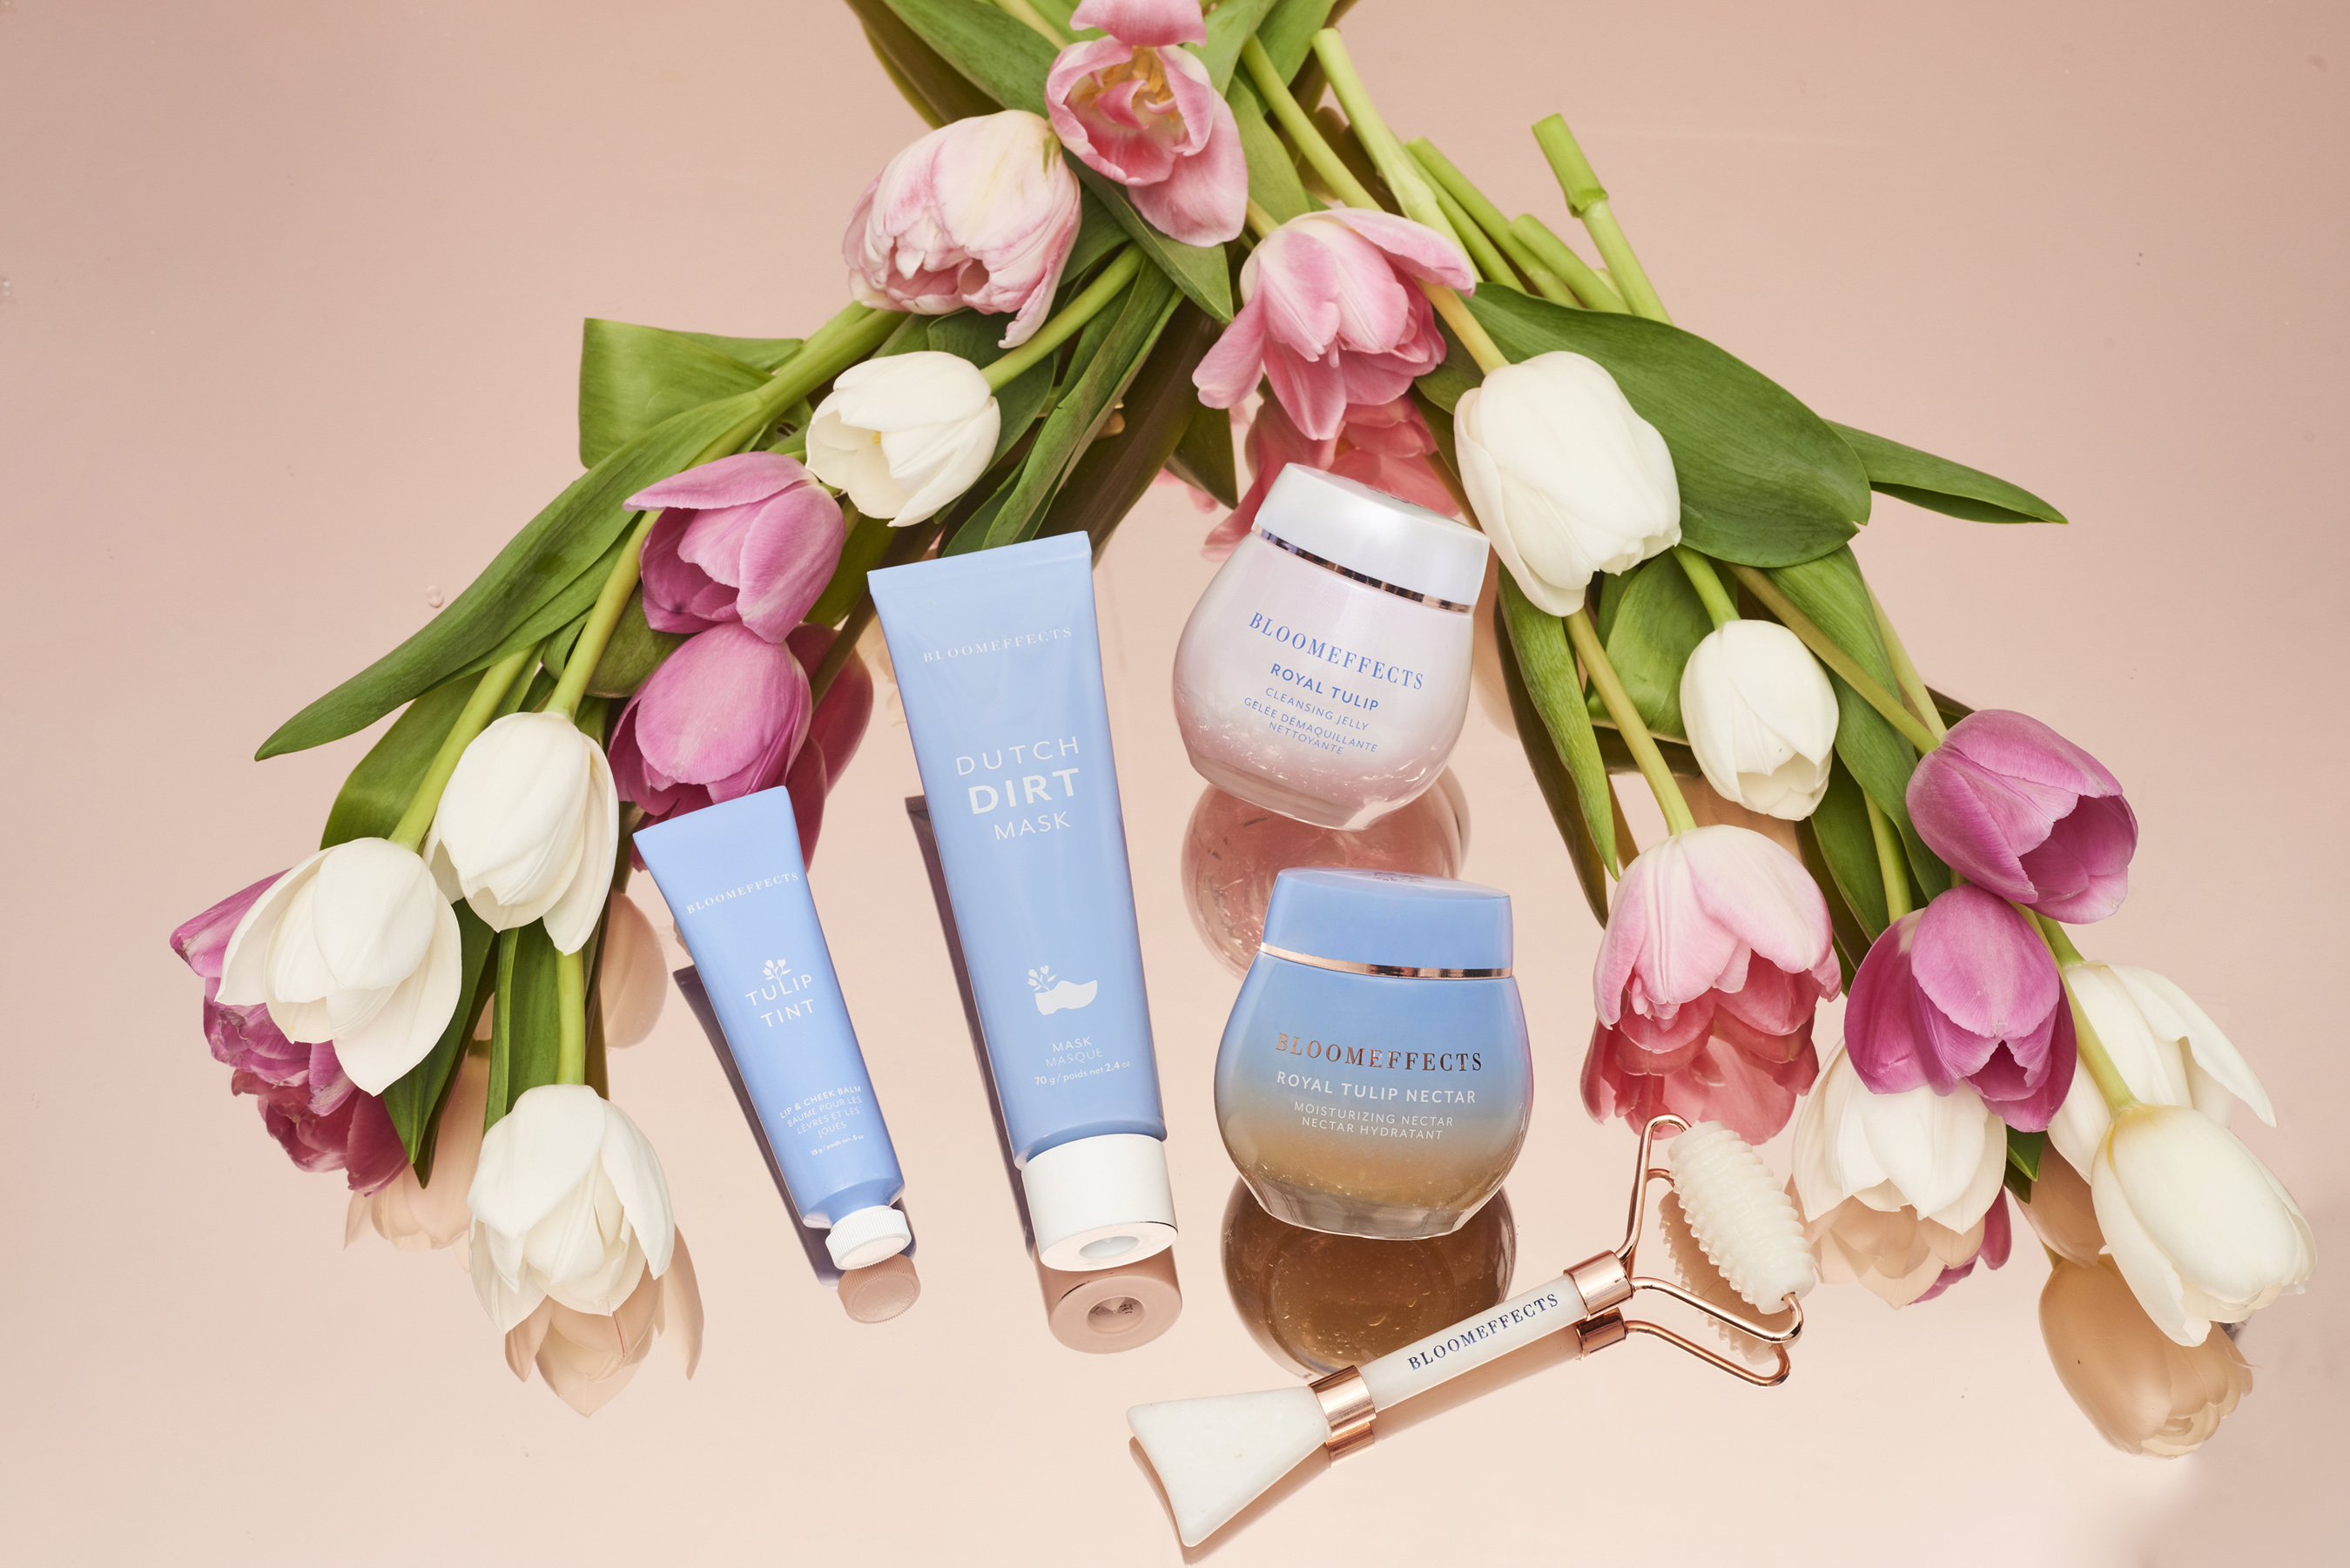 Bloomeffects Product Set